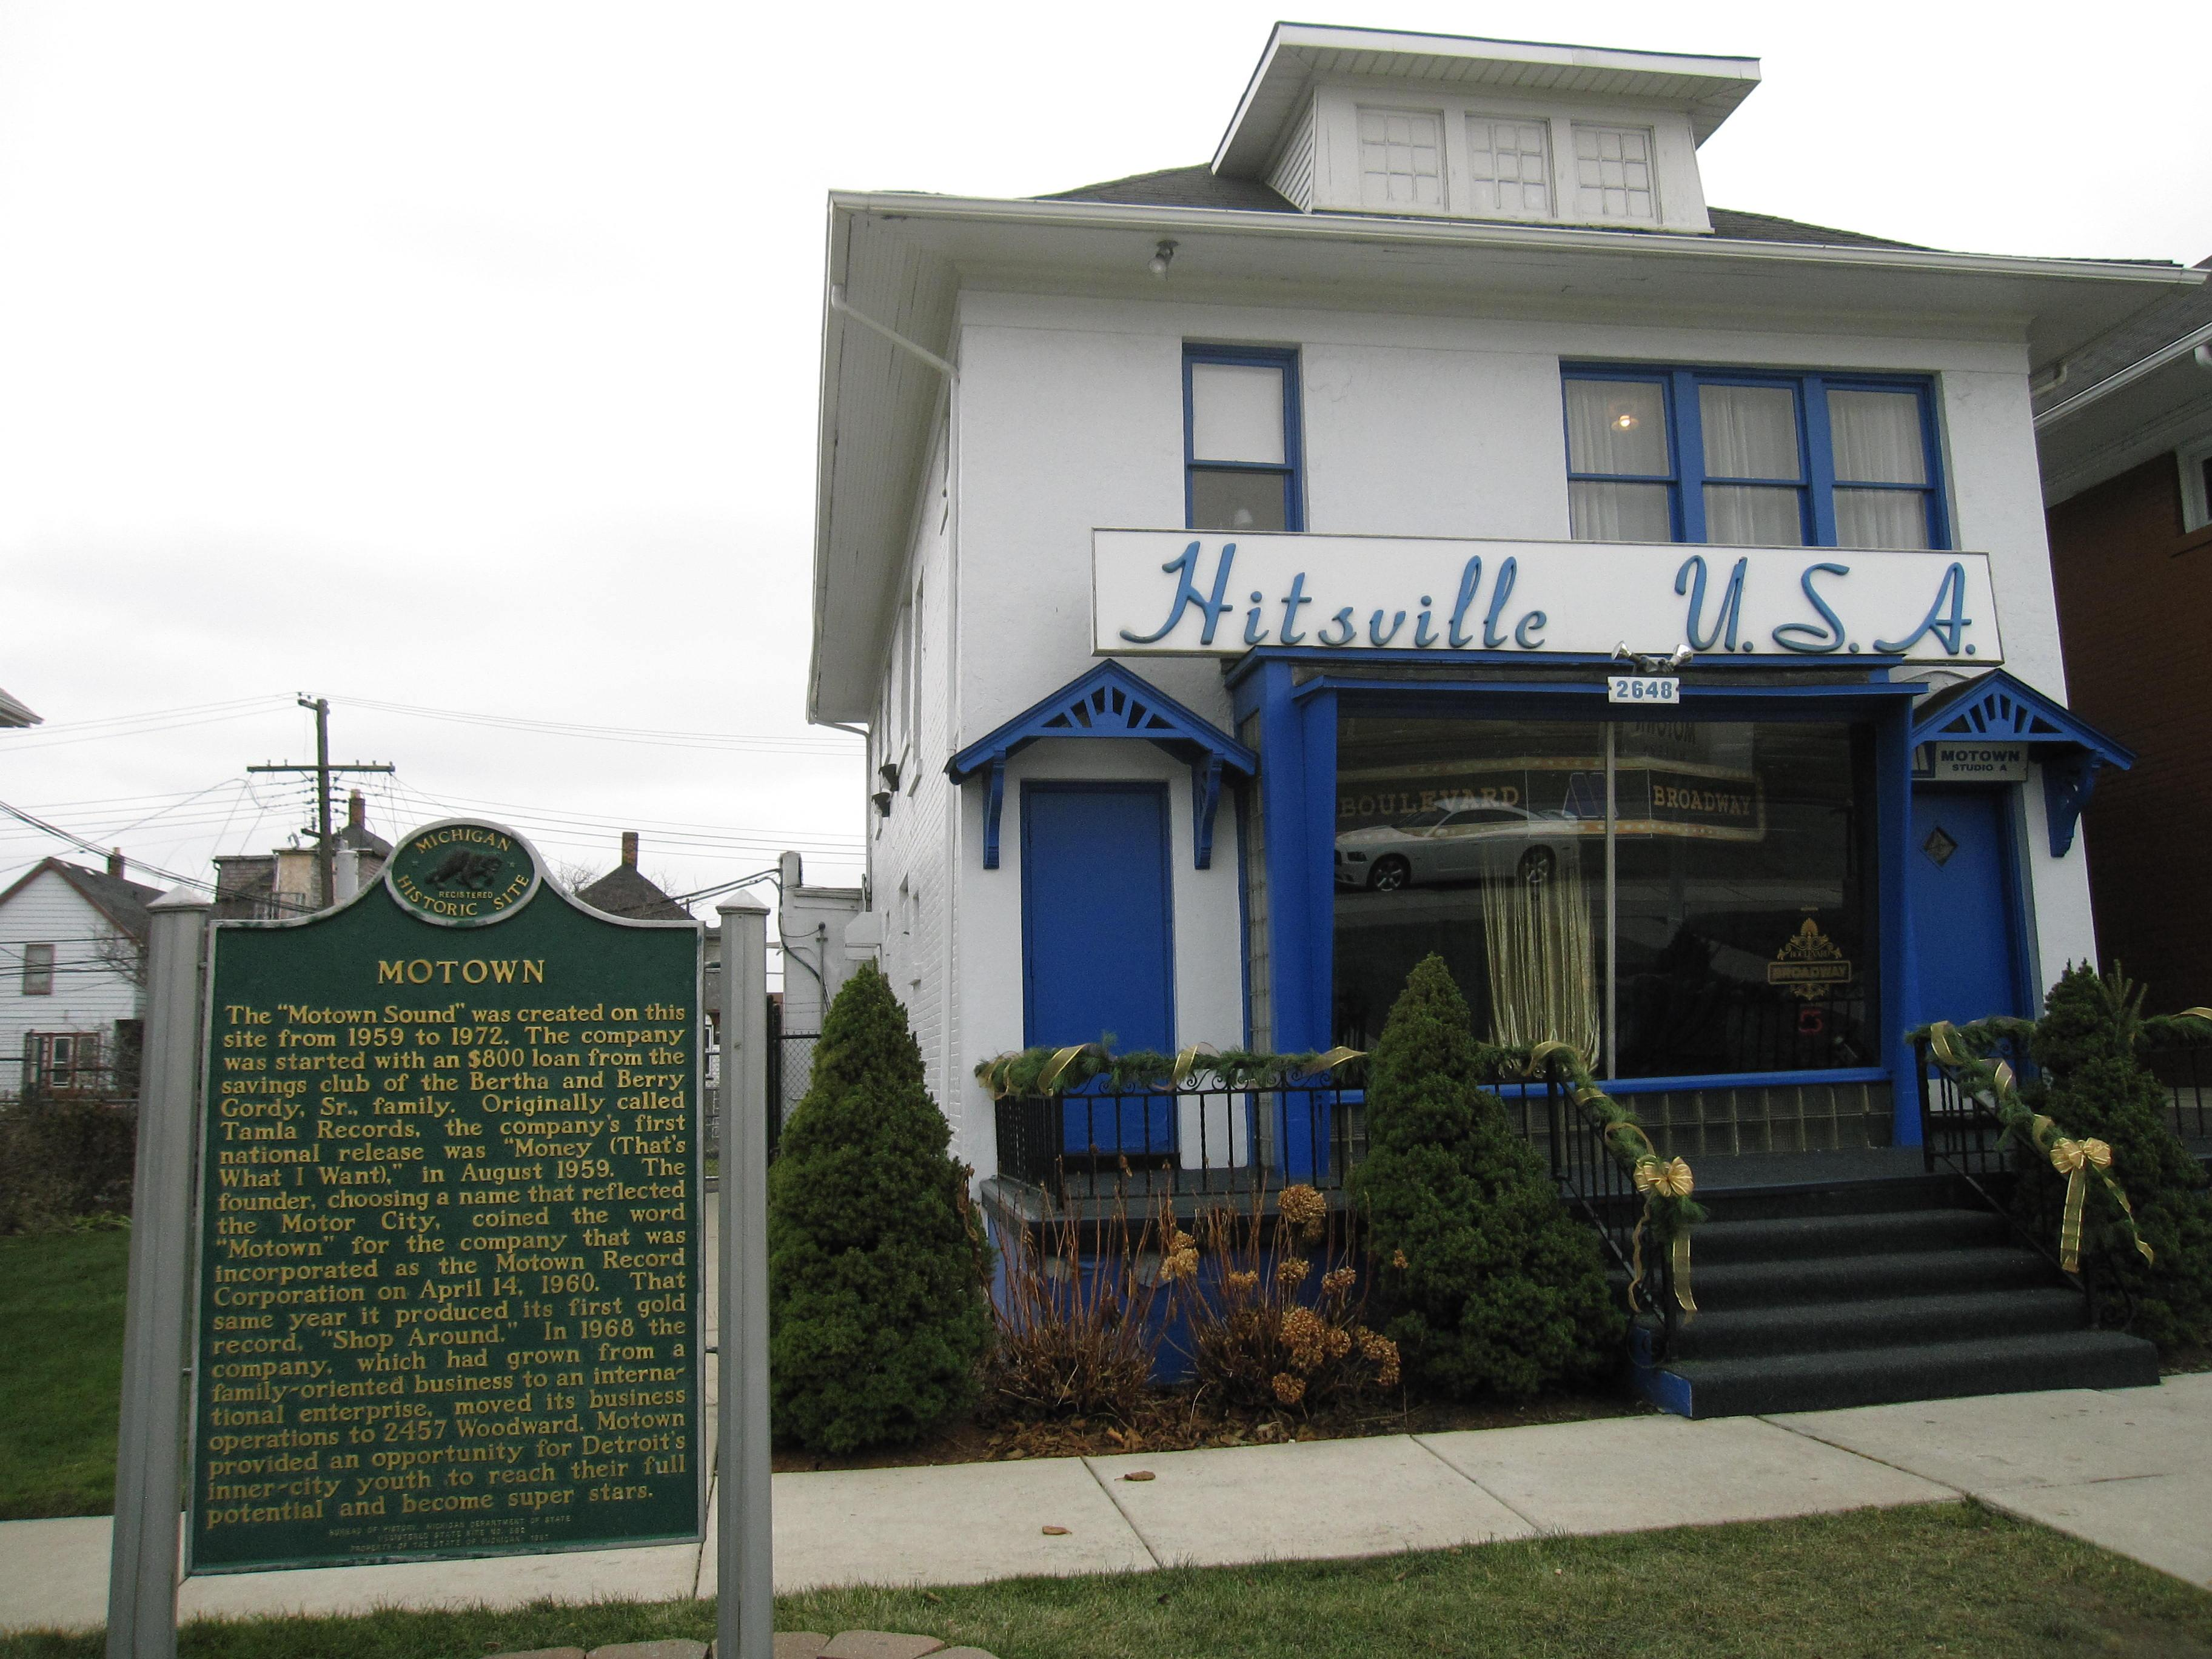 A tourist in Detroit: Motown, coney dogs and art